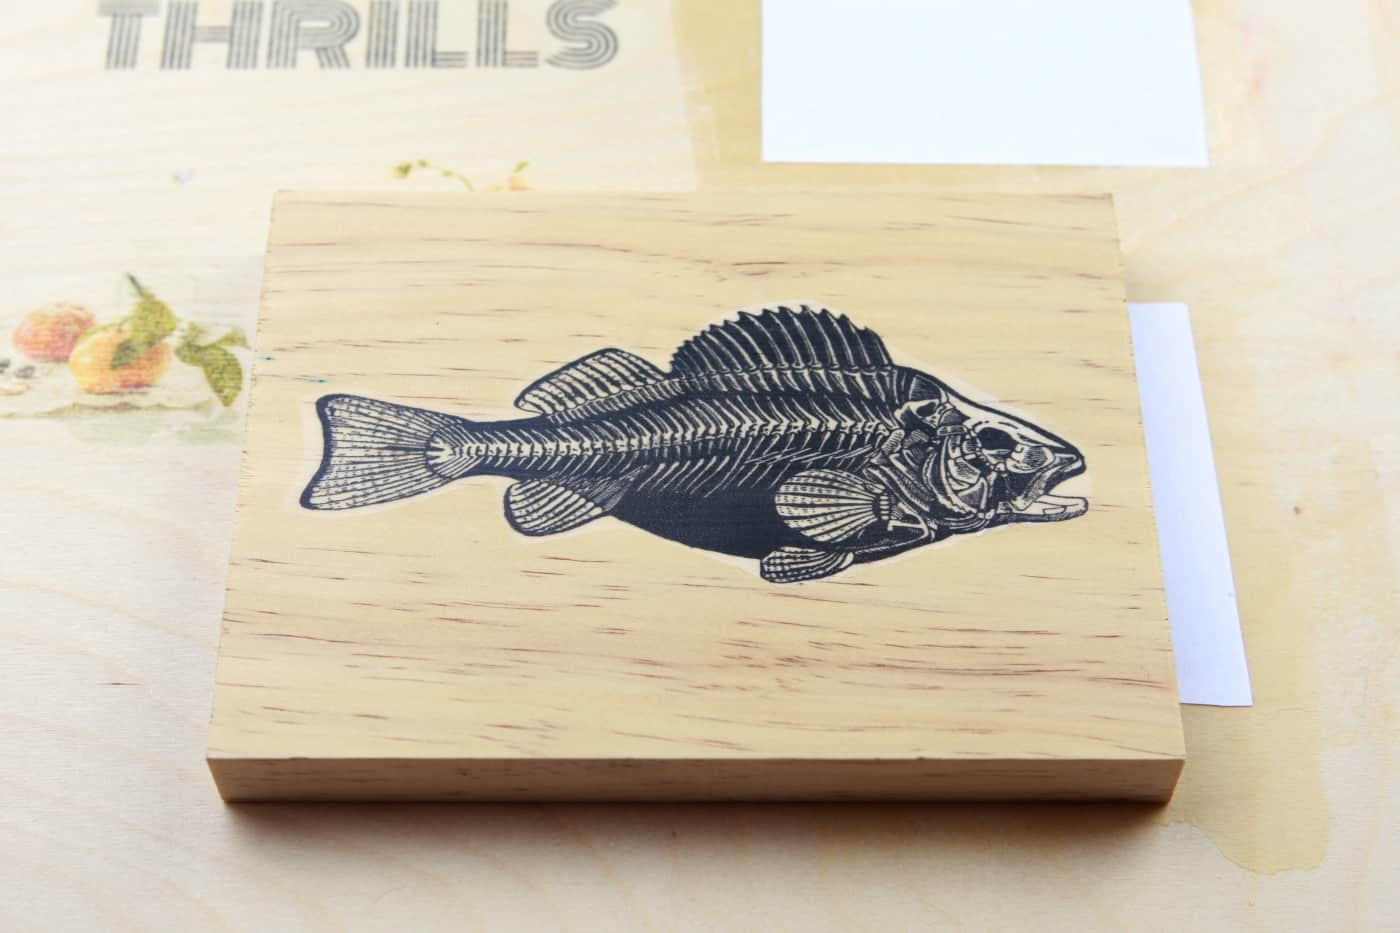 fish image transferred onto wood with t-shirt transfer paper